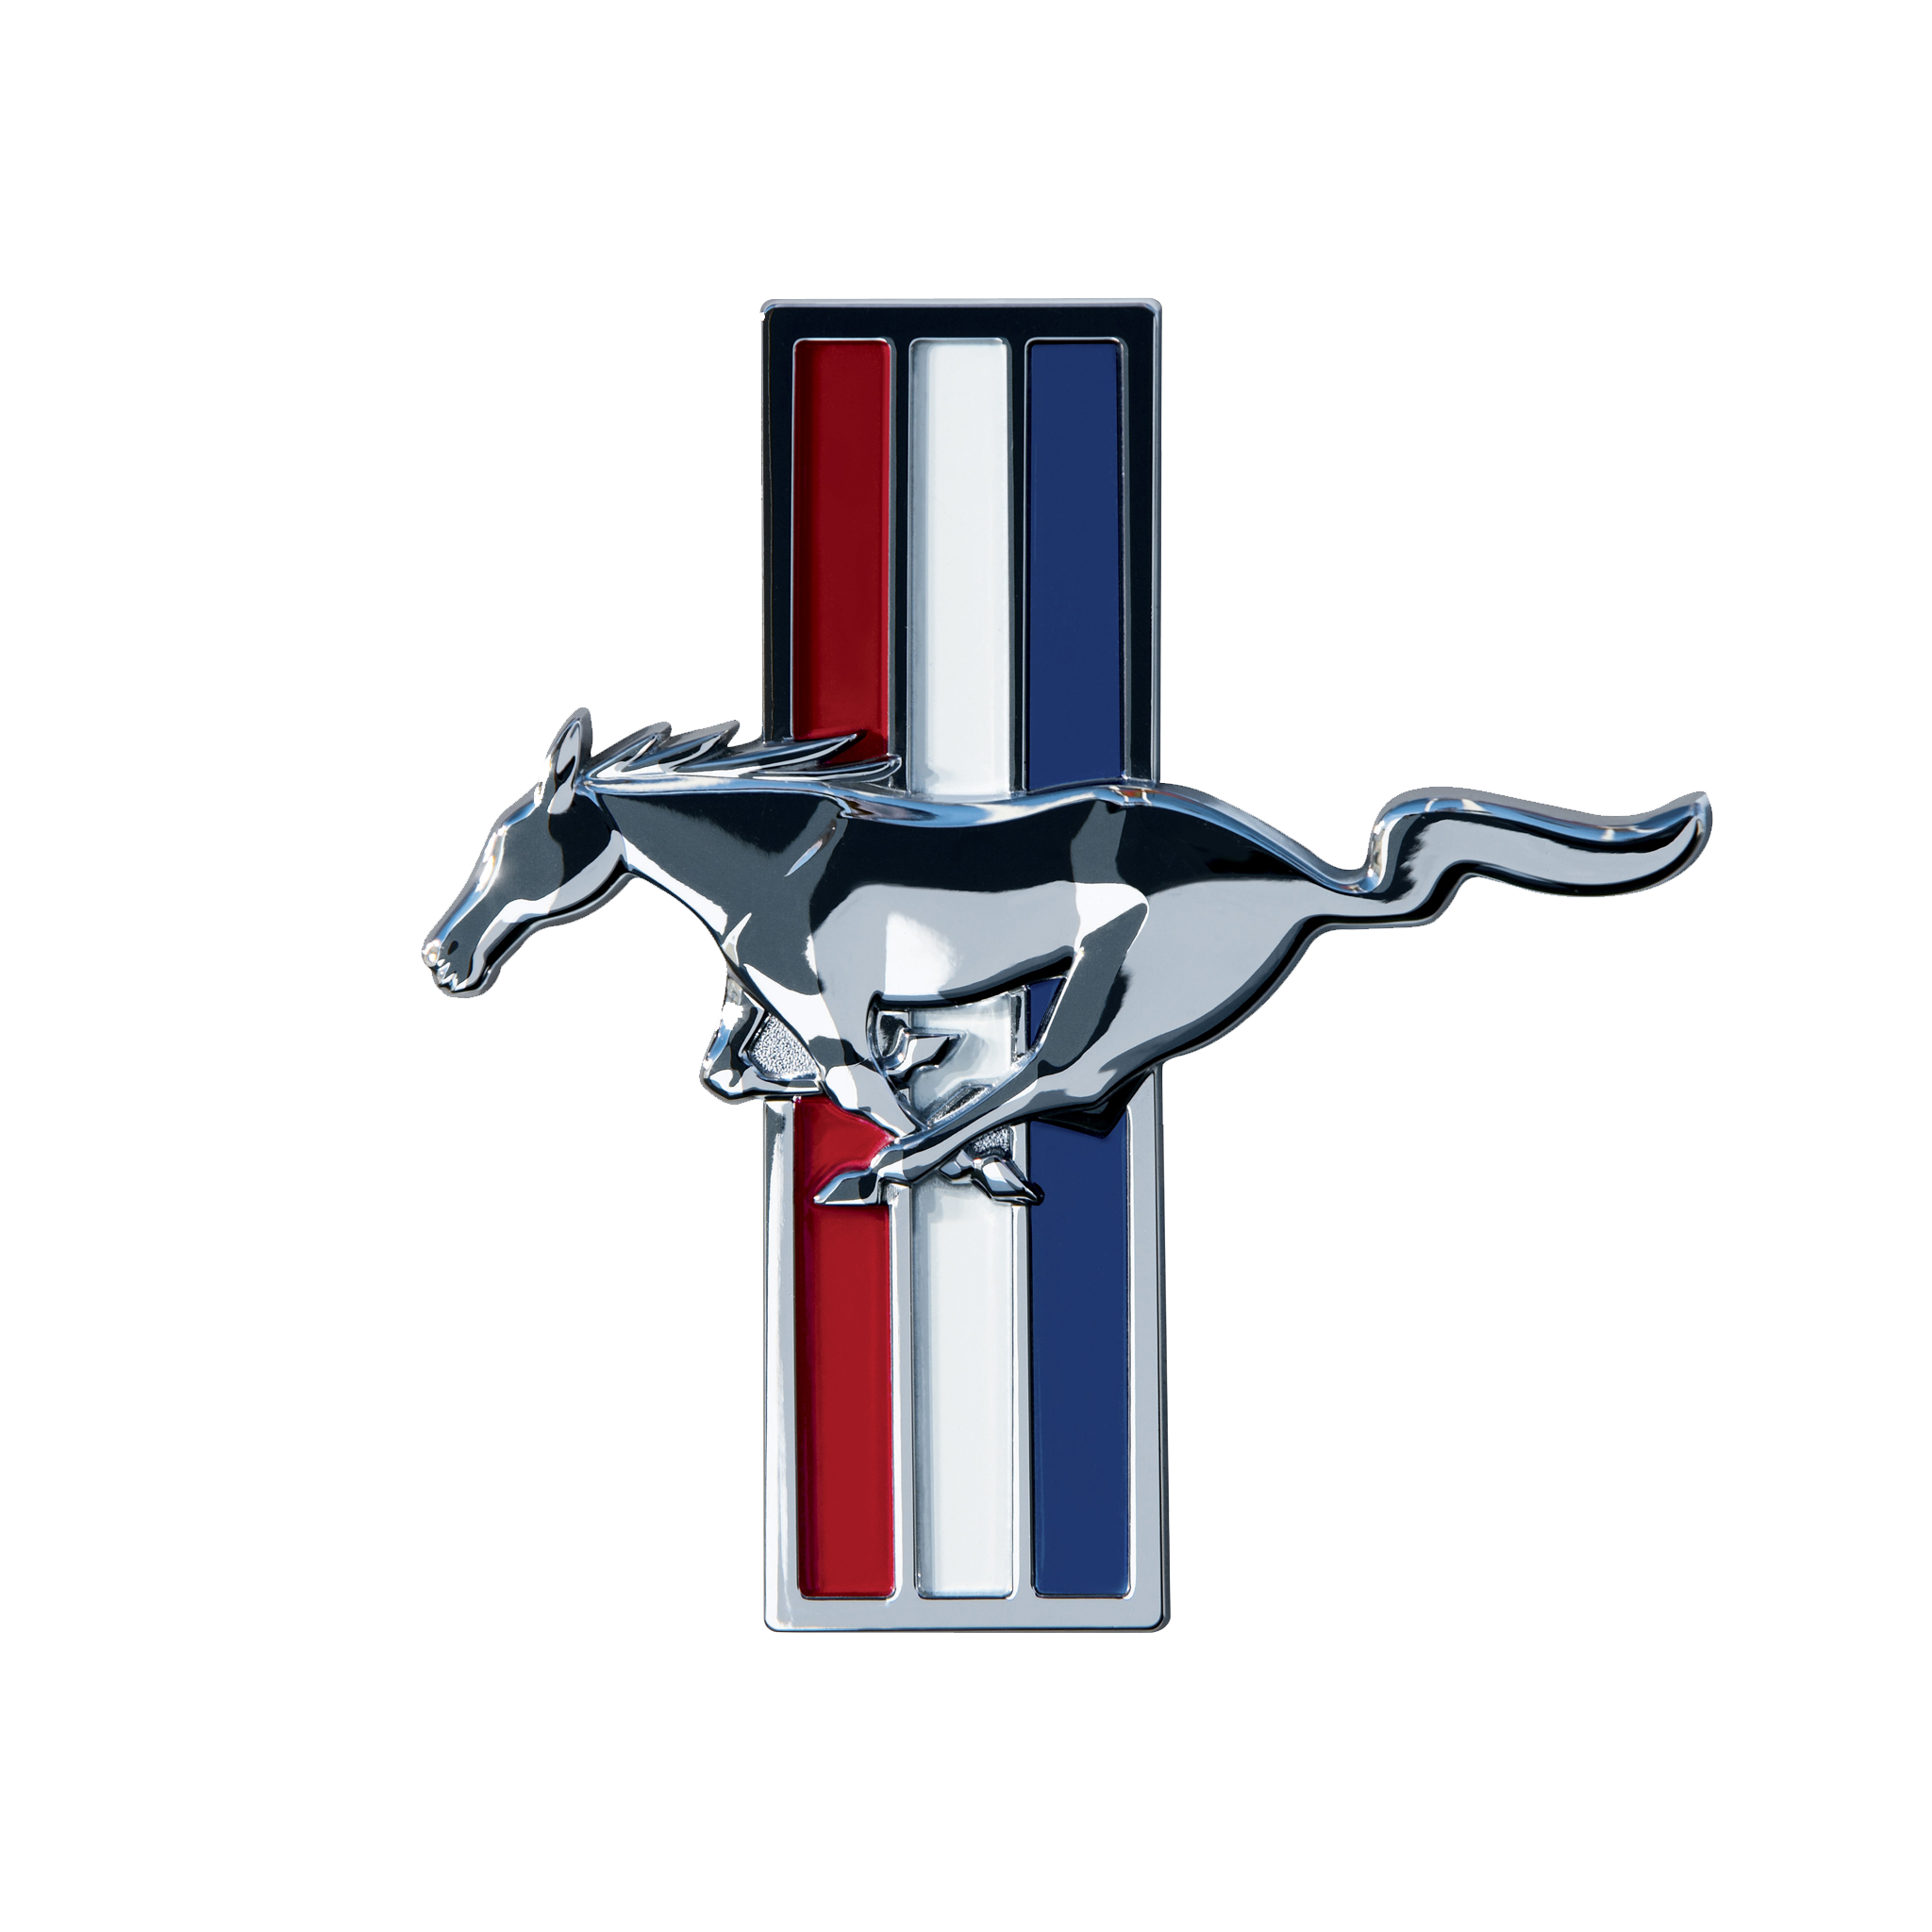 Mustang Logo, Meaning, Information.